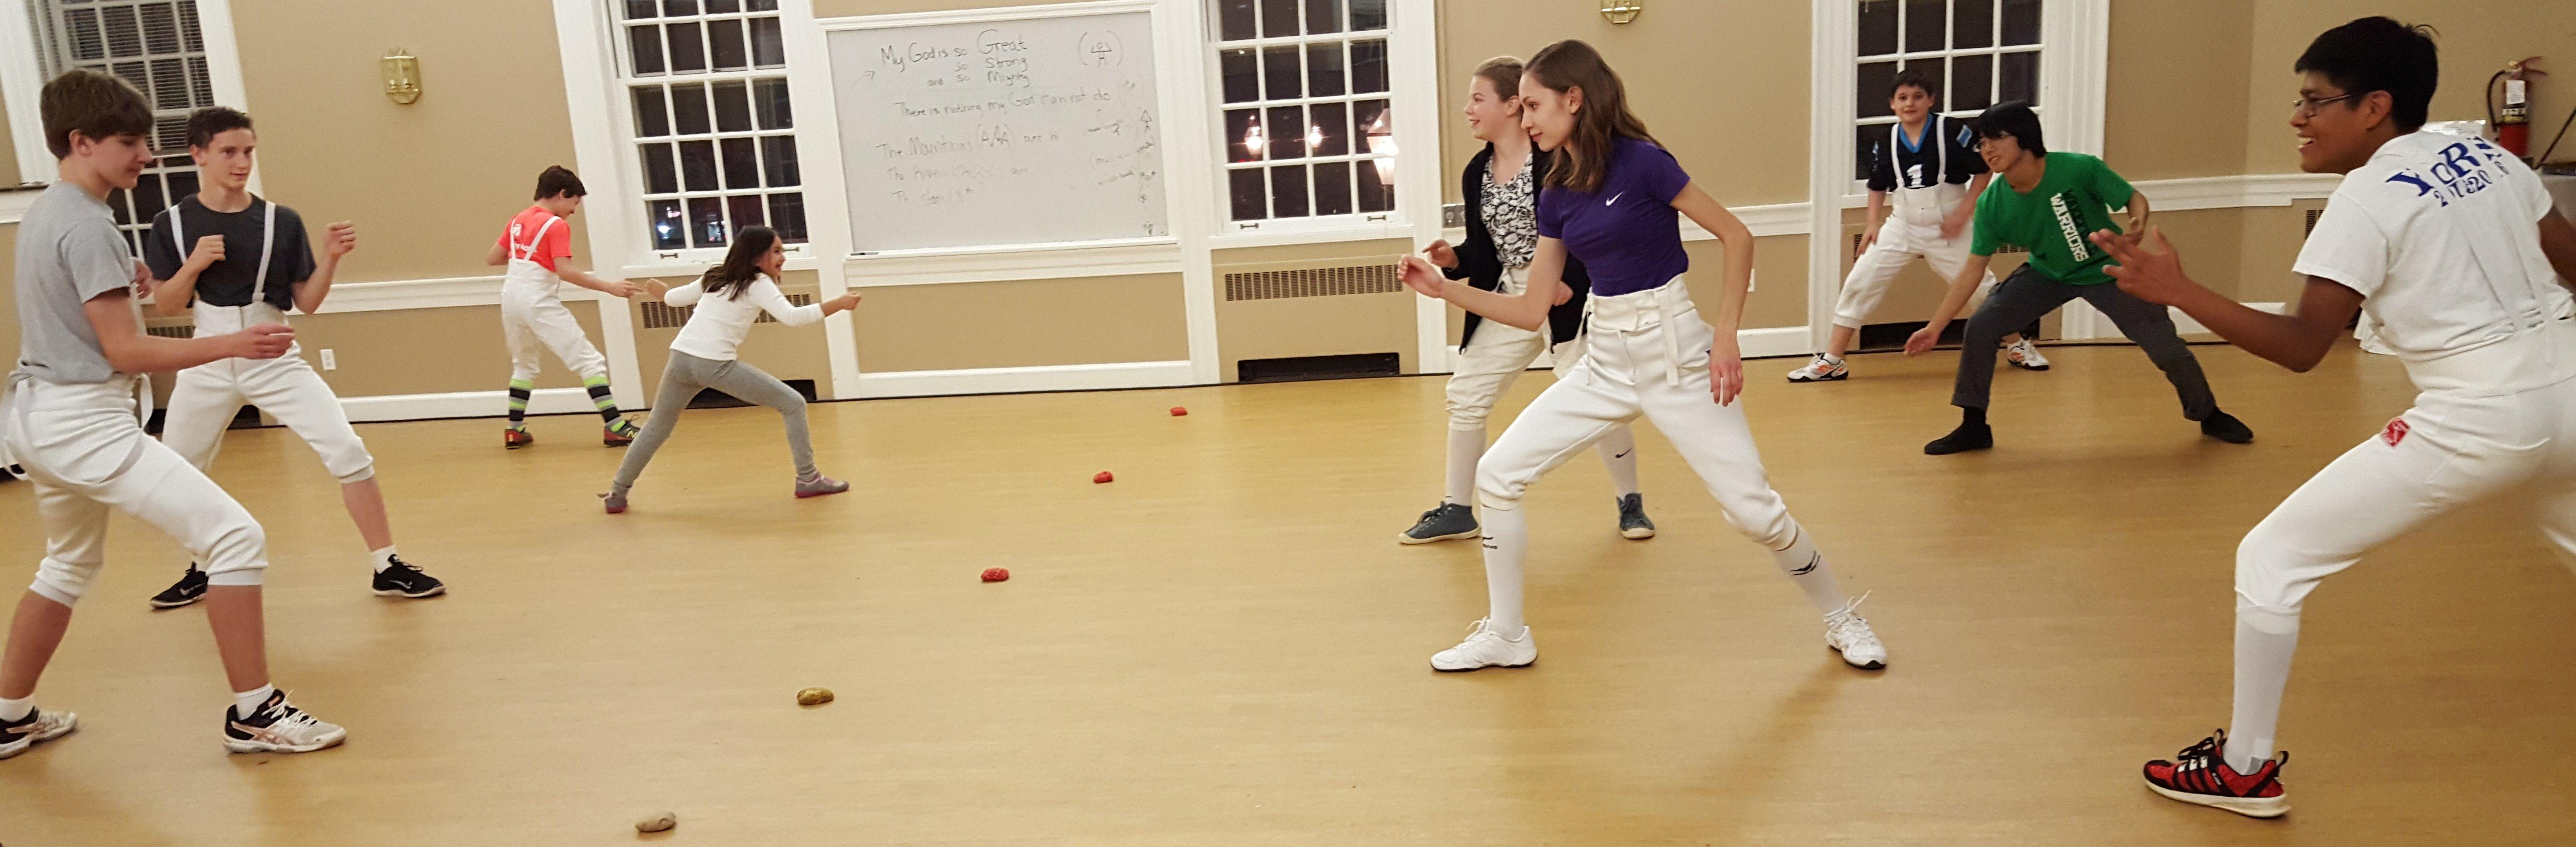 Nova Fencing Club Coupons Near Me In Falls Church 8coupons